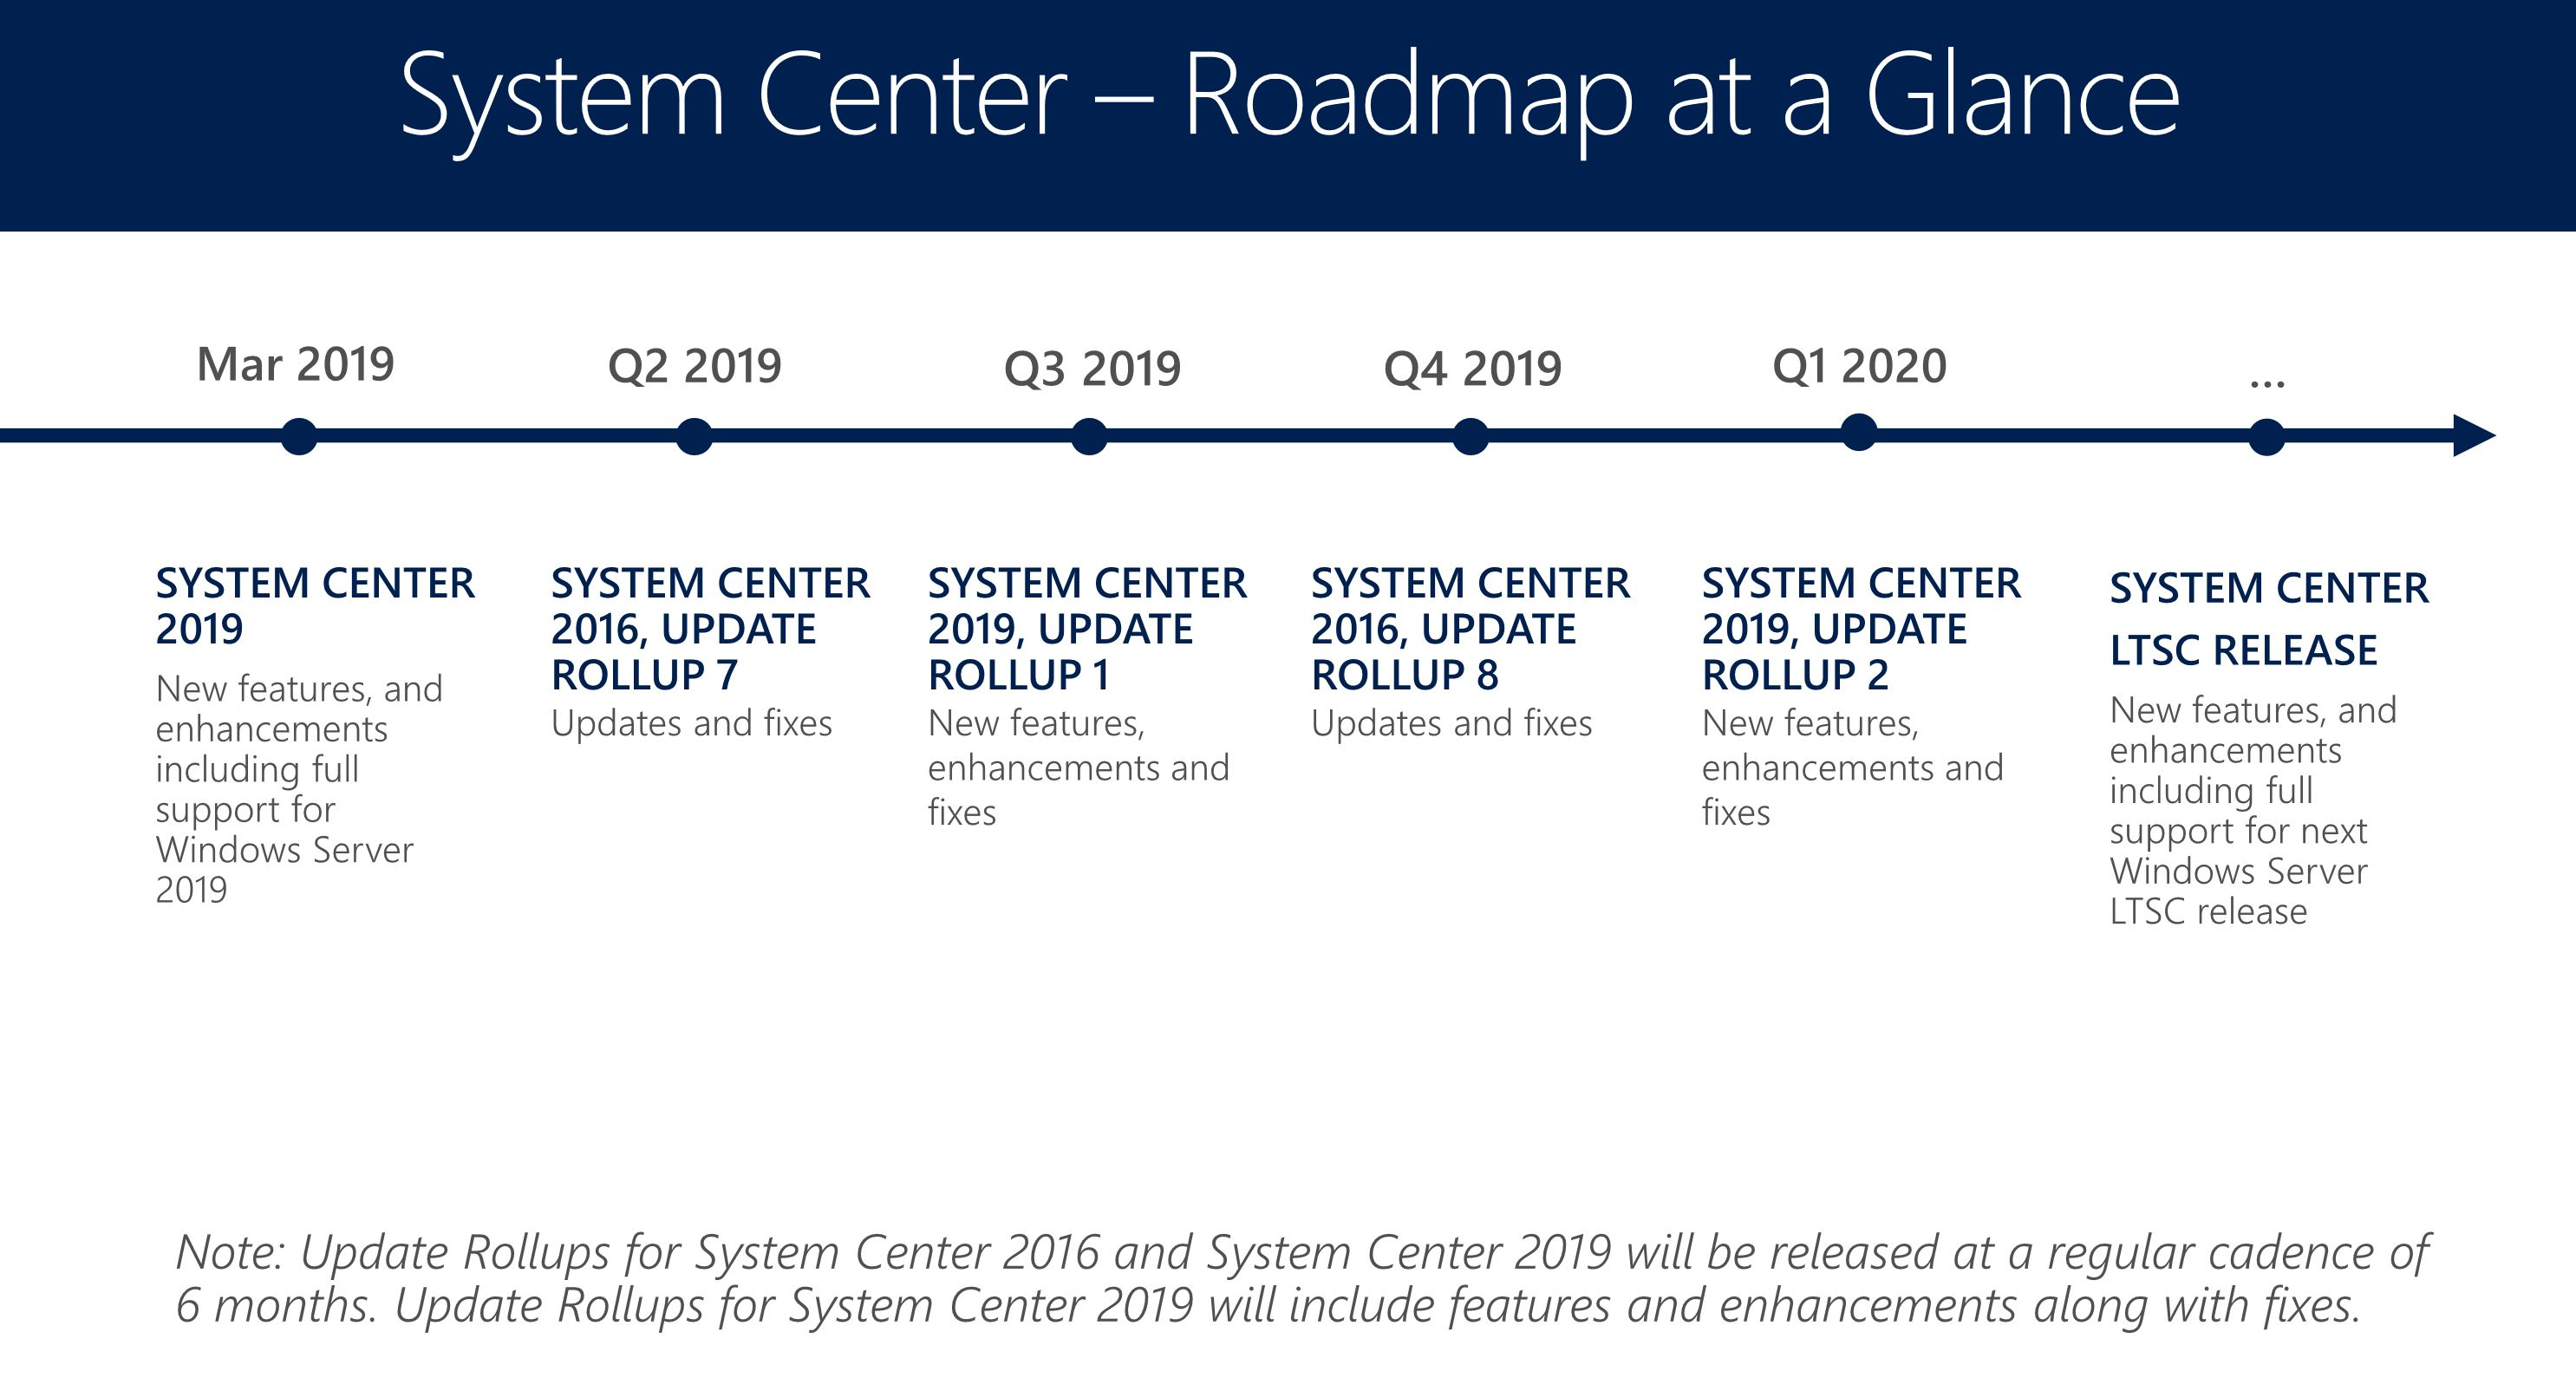 Microsoft has updated his System Center Roadmap